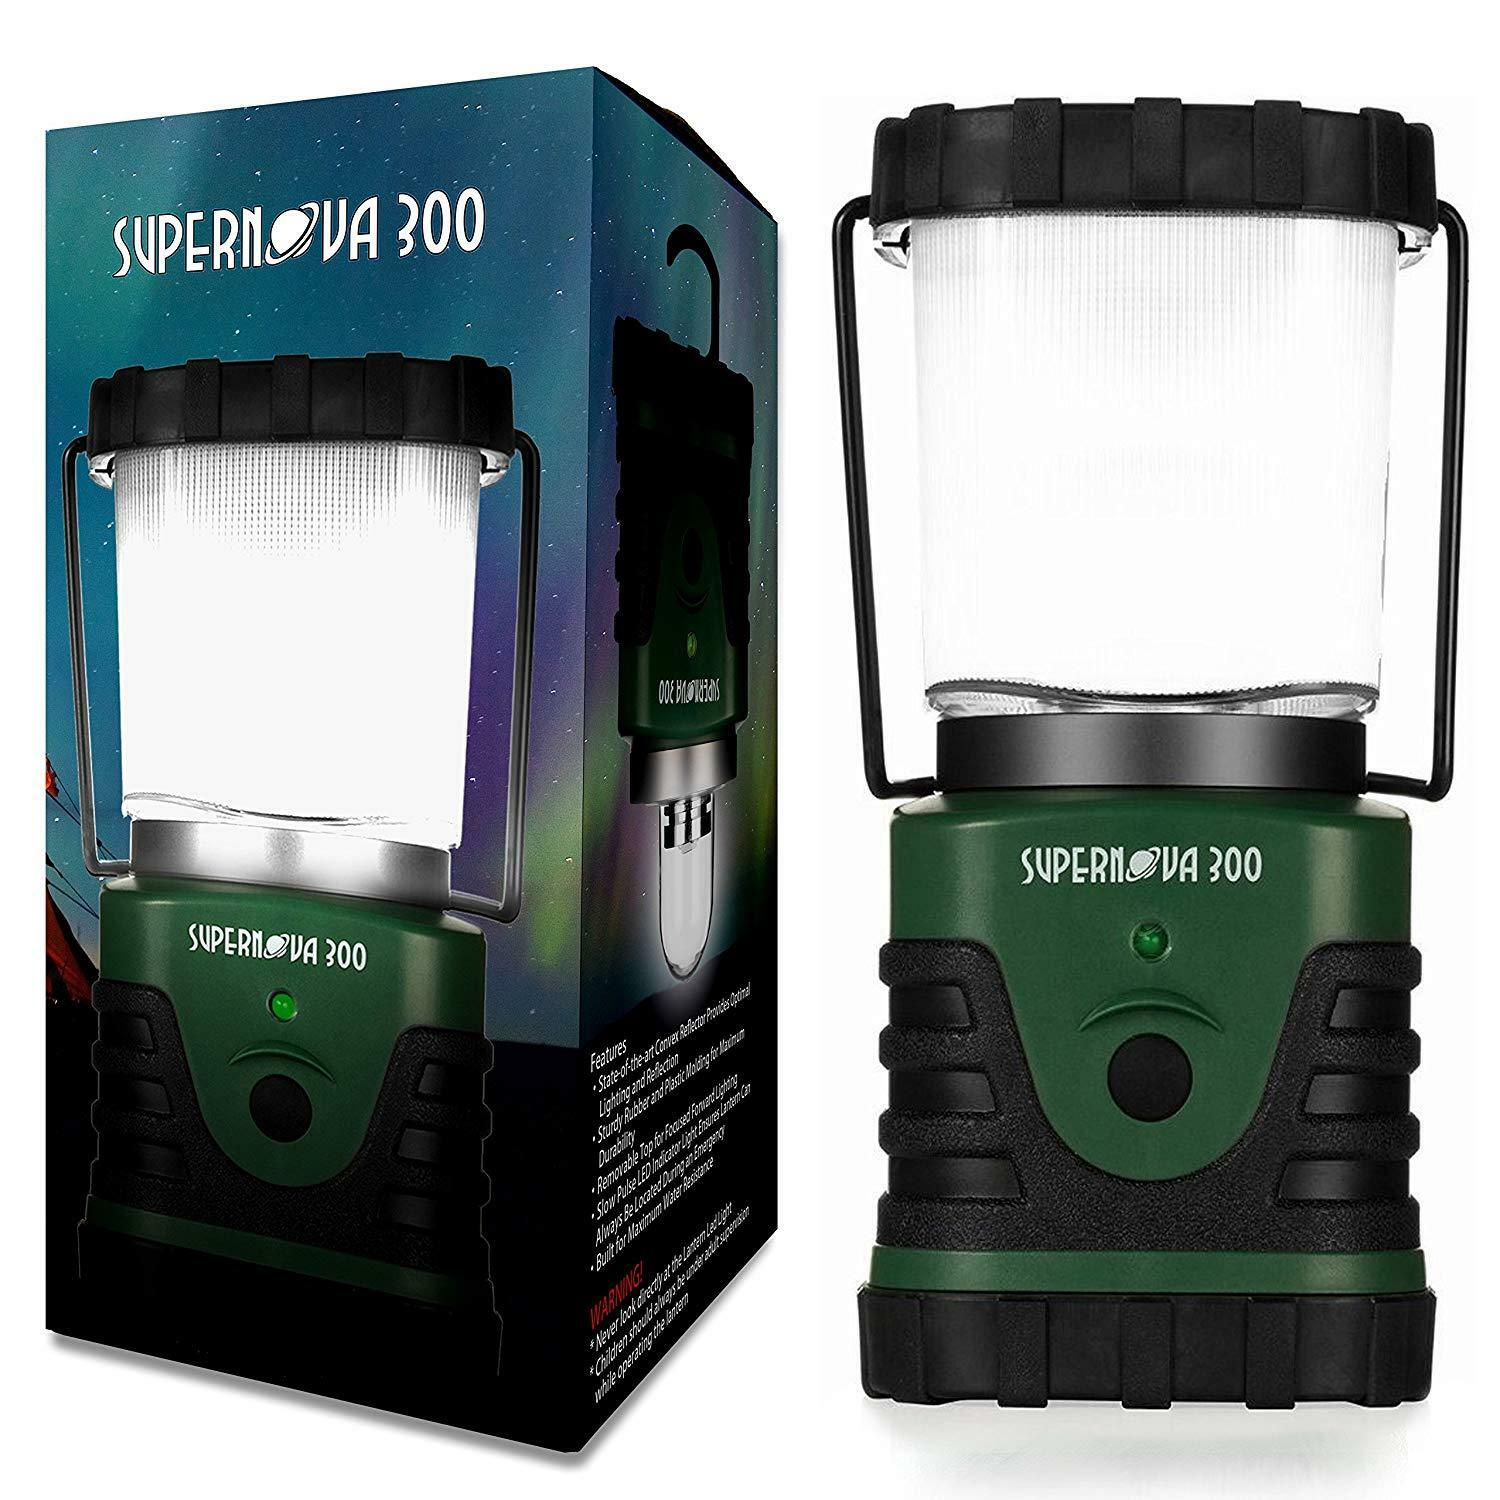 Supernova 300 Lumens Ultra Bright LED  Camping and Emergency Lantern OPENBOX  online sales